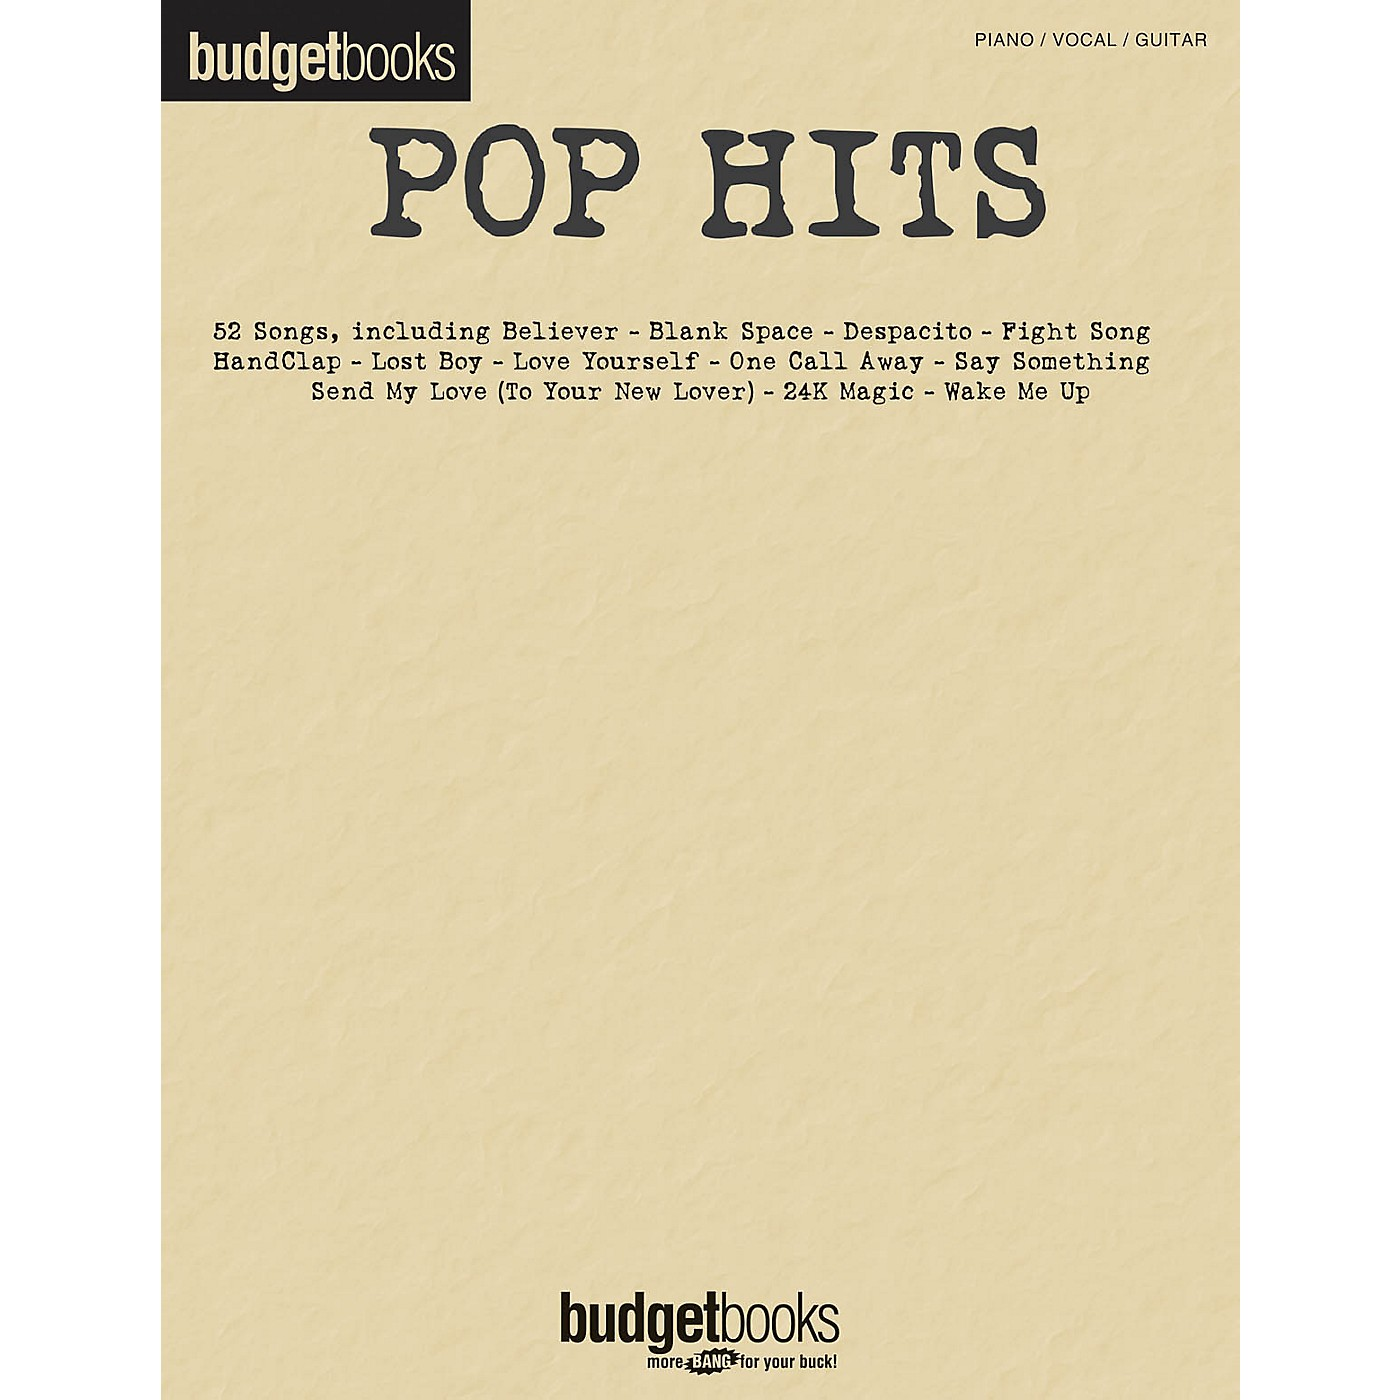 Hal Leonard Pop Hits (Budget Books) Piano/Vocal/Guitar Songbook thumbnail